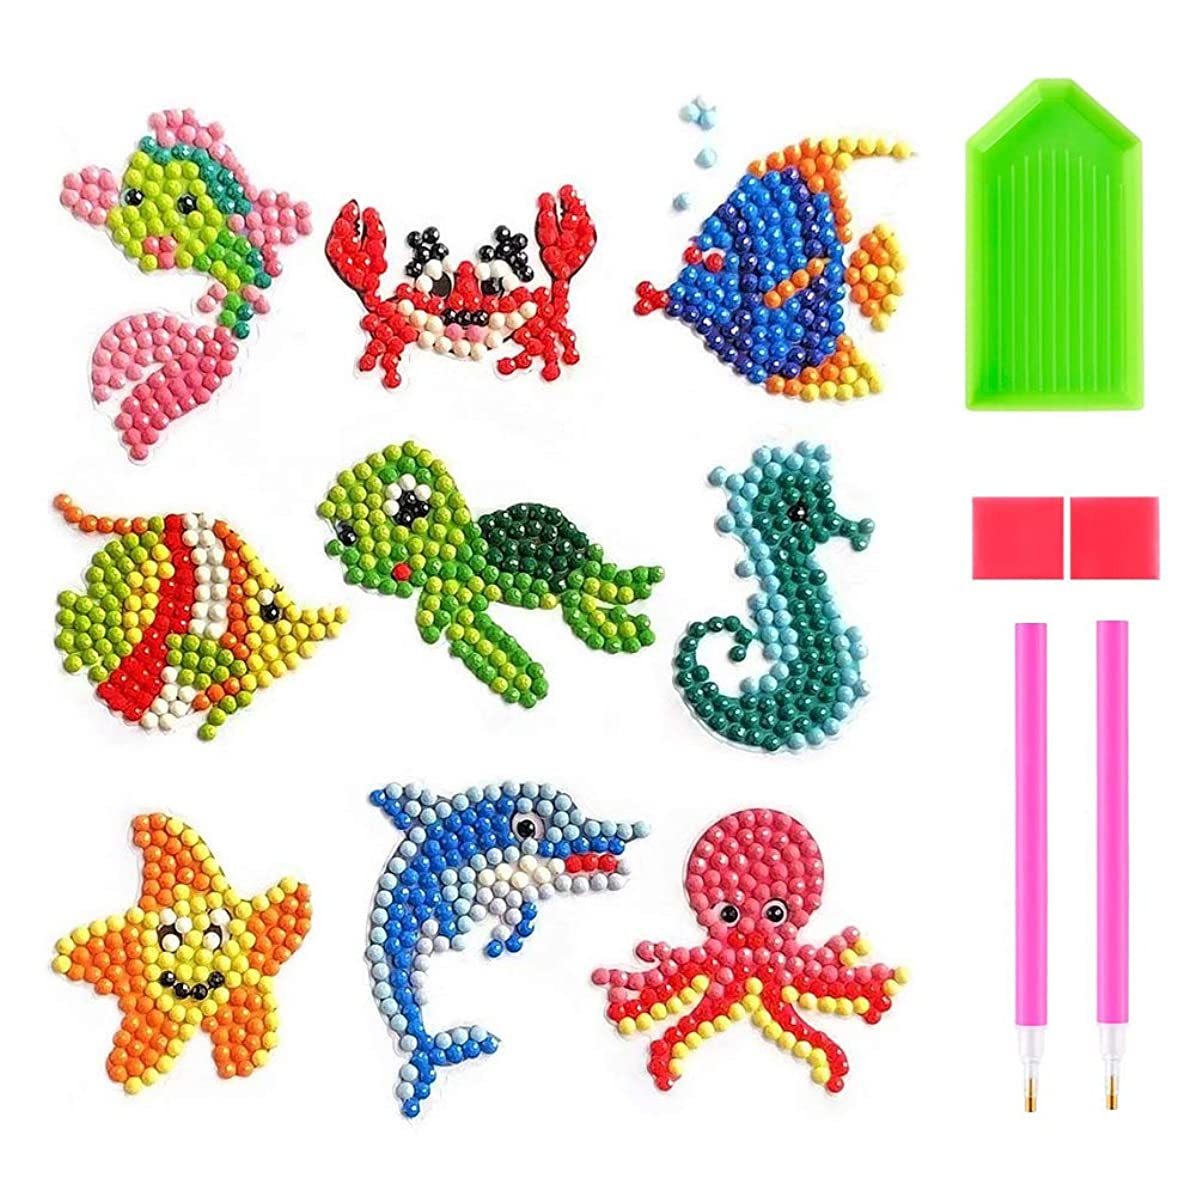 5d Diamond Painting Kit for Kids, 9 Pack Sea Animal Series Mosaic Stickers Paint by Numbers Diamonds Full Drill Arts Crafts Kits for Children Gift